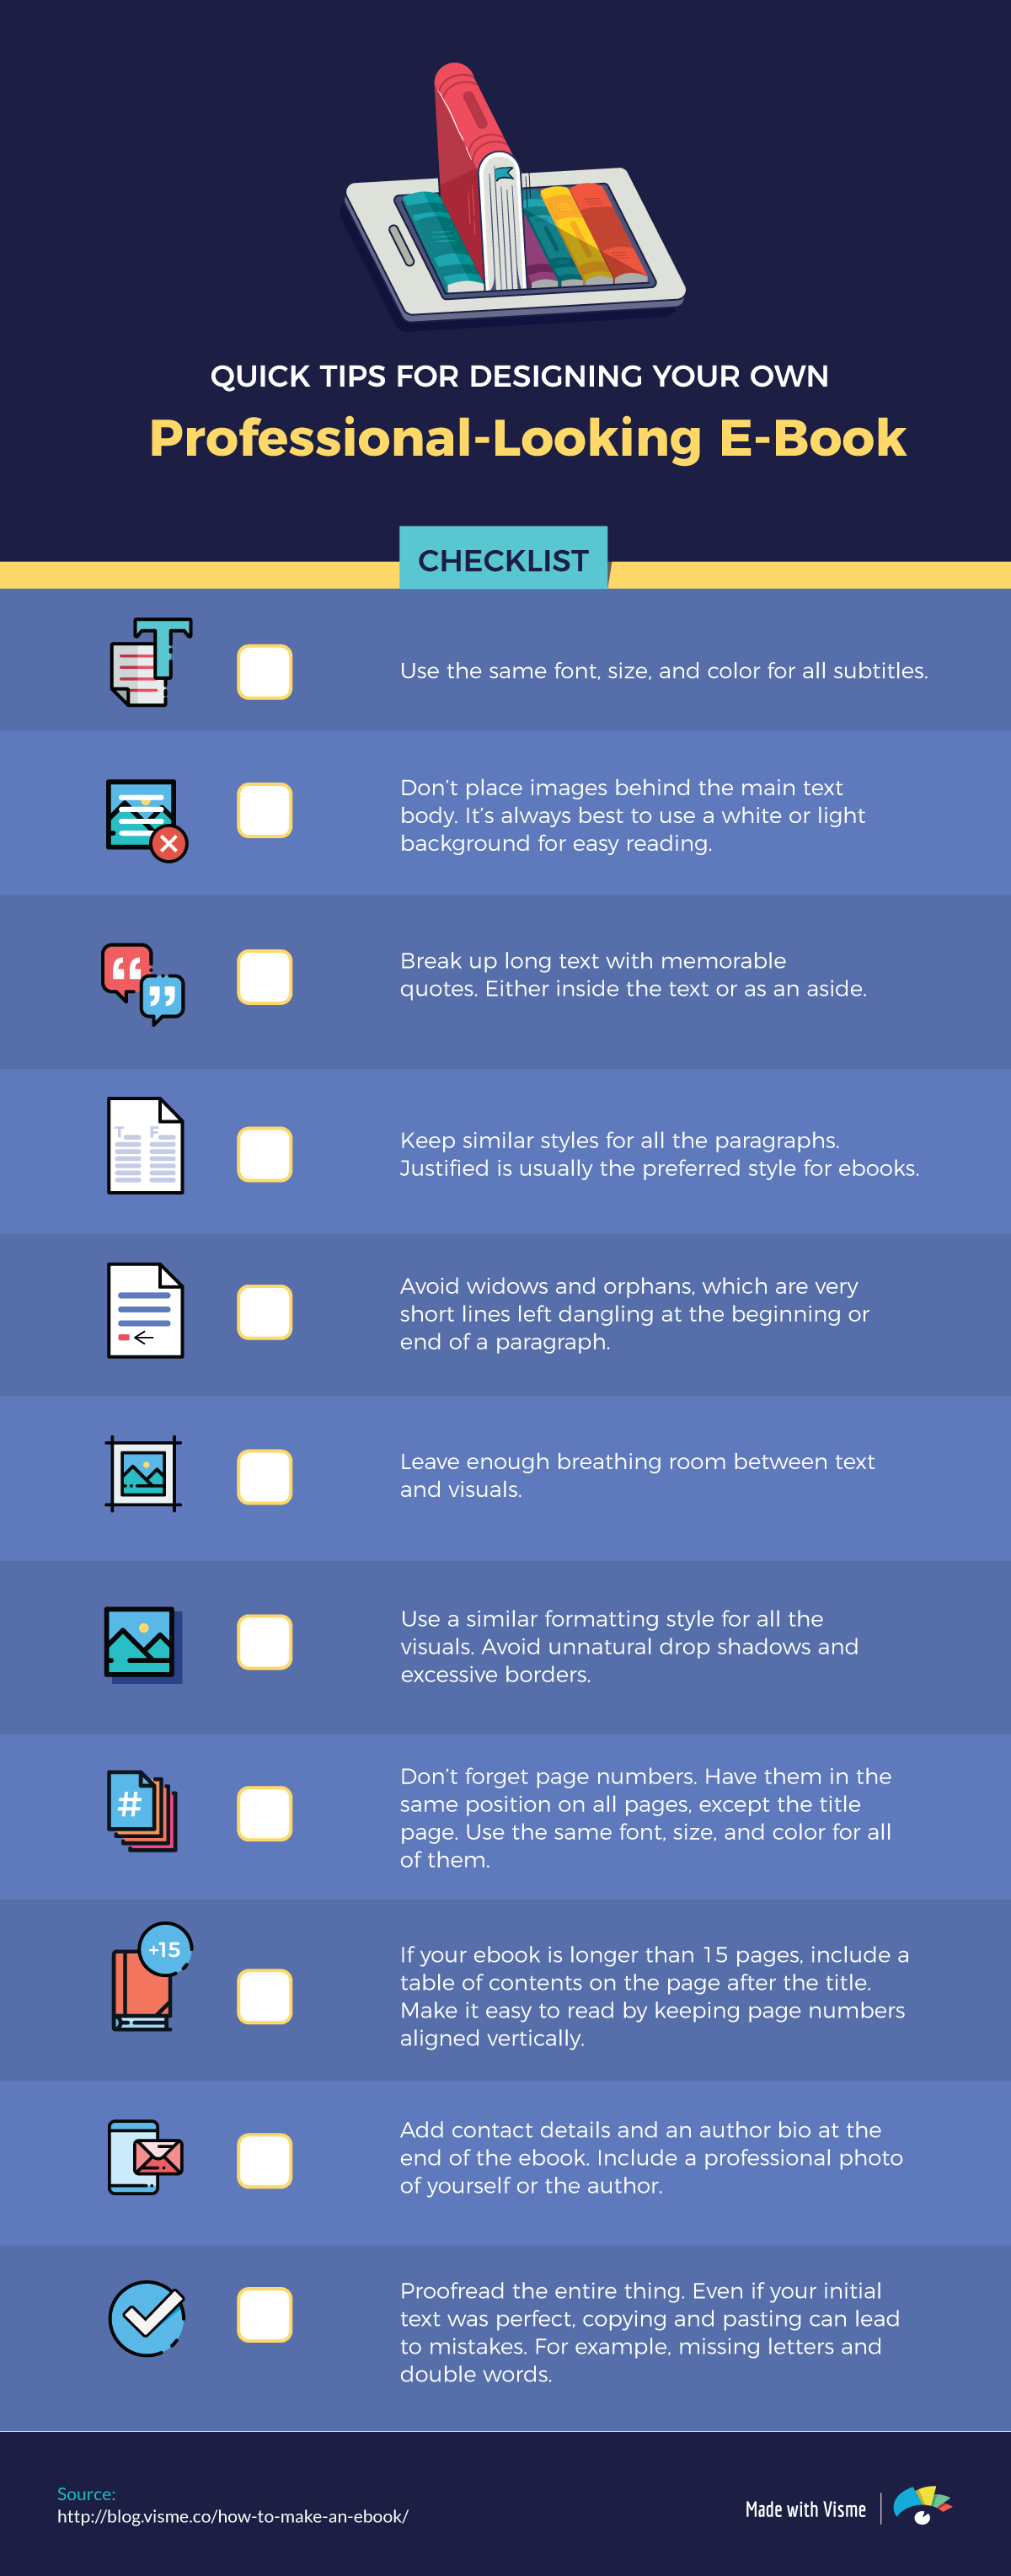 How-to-make-an-Ebook-checklist-ok